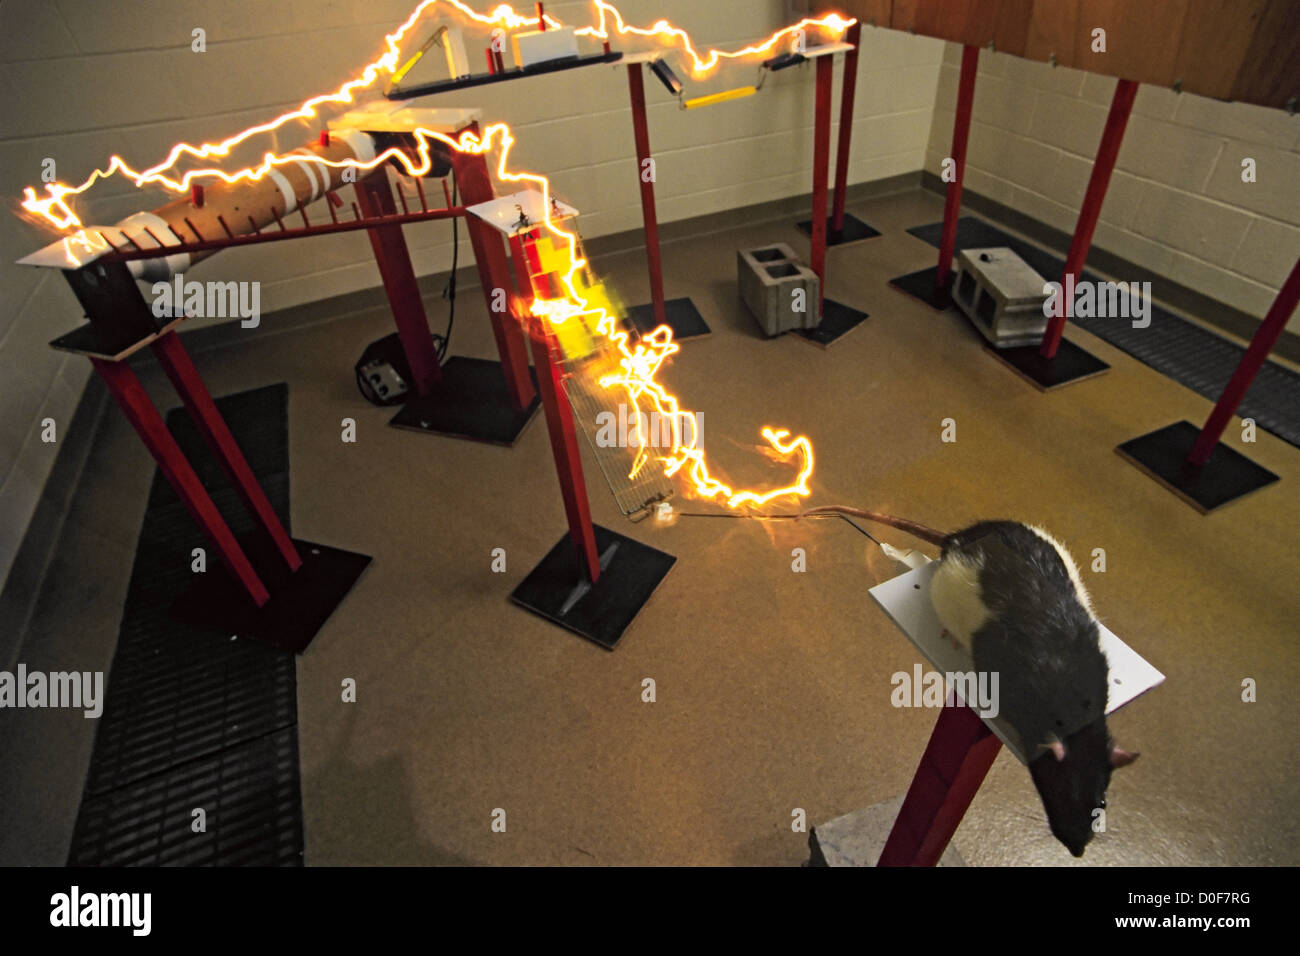 At Rat Research Lab University Illinois Urbana Dr. William Greenough his colleagues have done experiments demonstrating - Stock Image